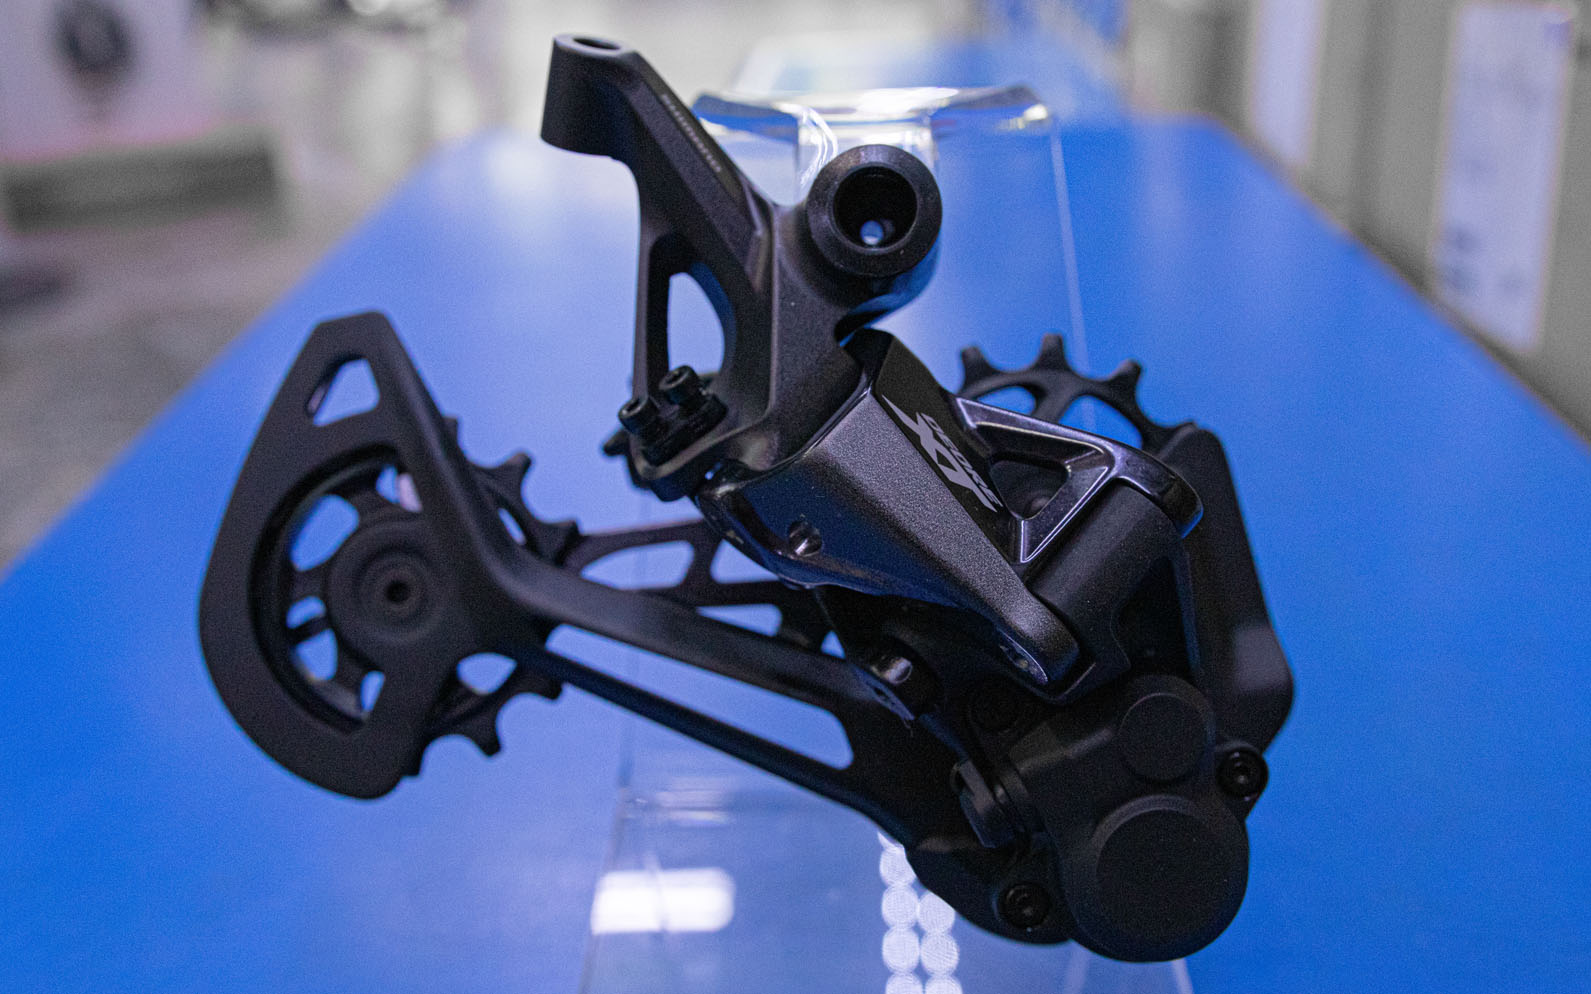 MTB: The 6 Reasons to Upgrade to the New Shimano XT M8100